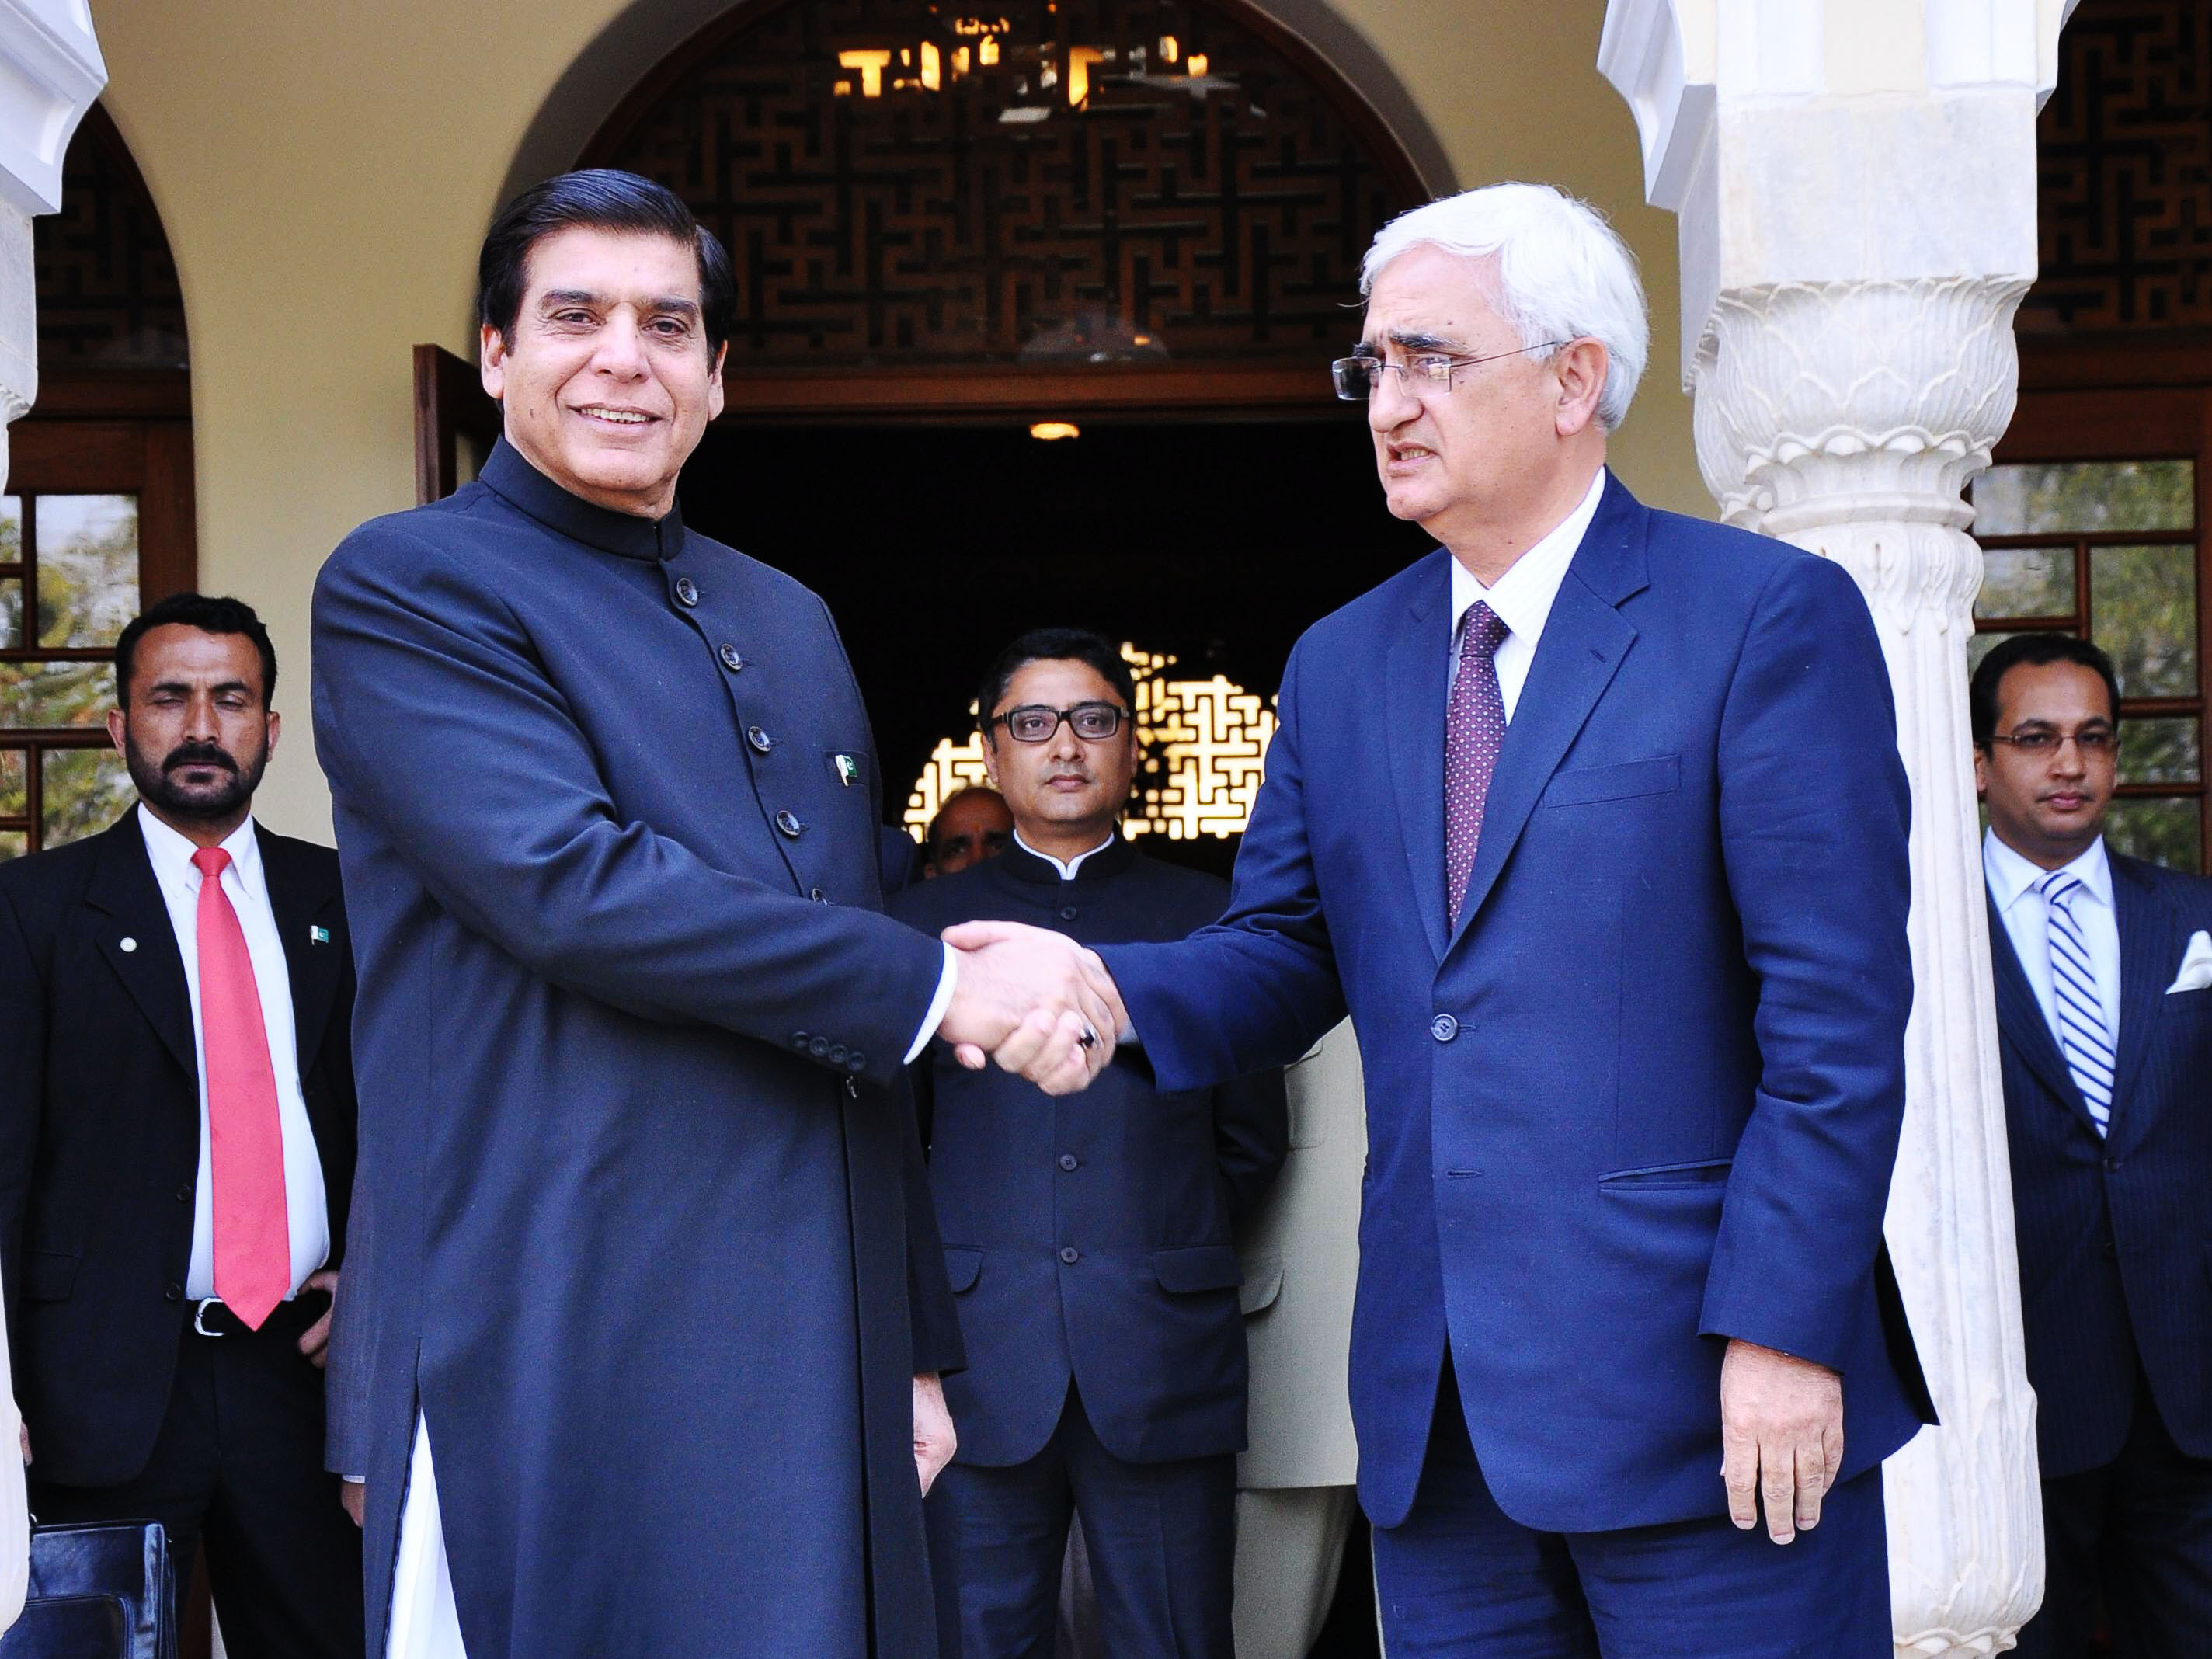 prime minister raja pervez ashraf r shakes hands with indian foreign minister salman khurshid at a hotel in jaipur march 9 2013 photo afp